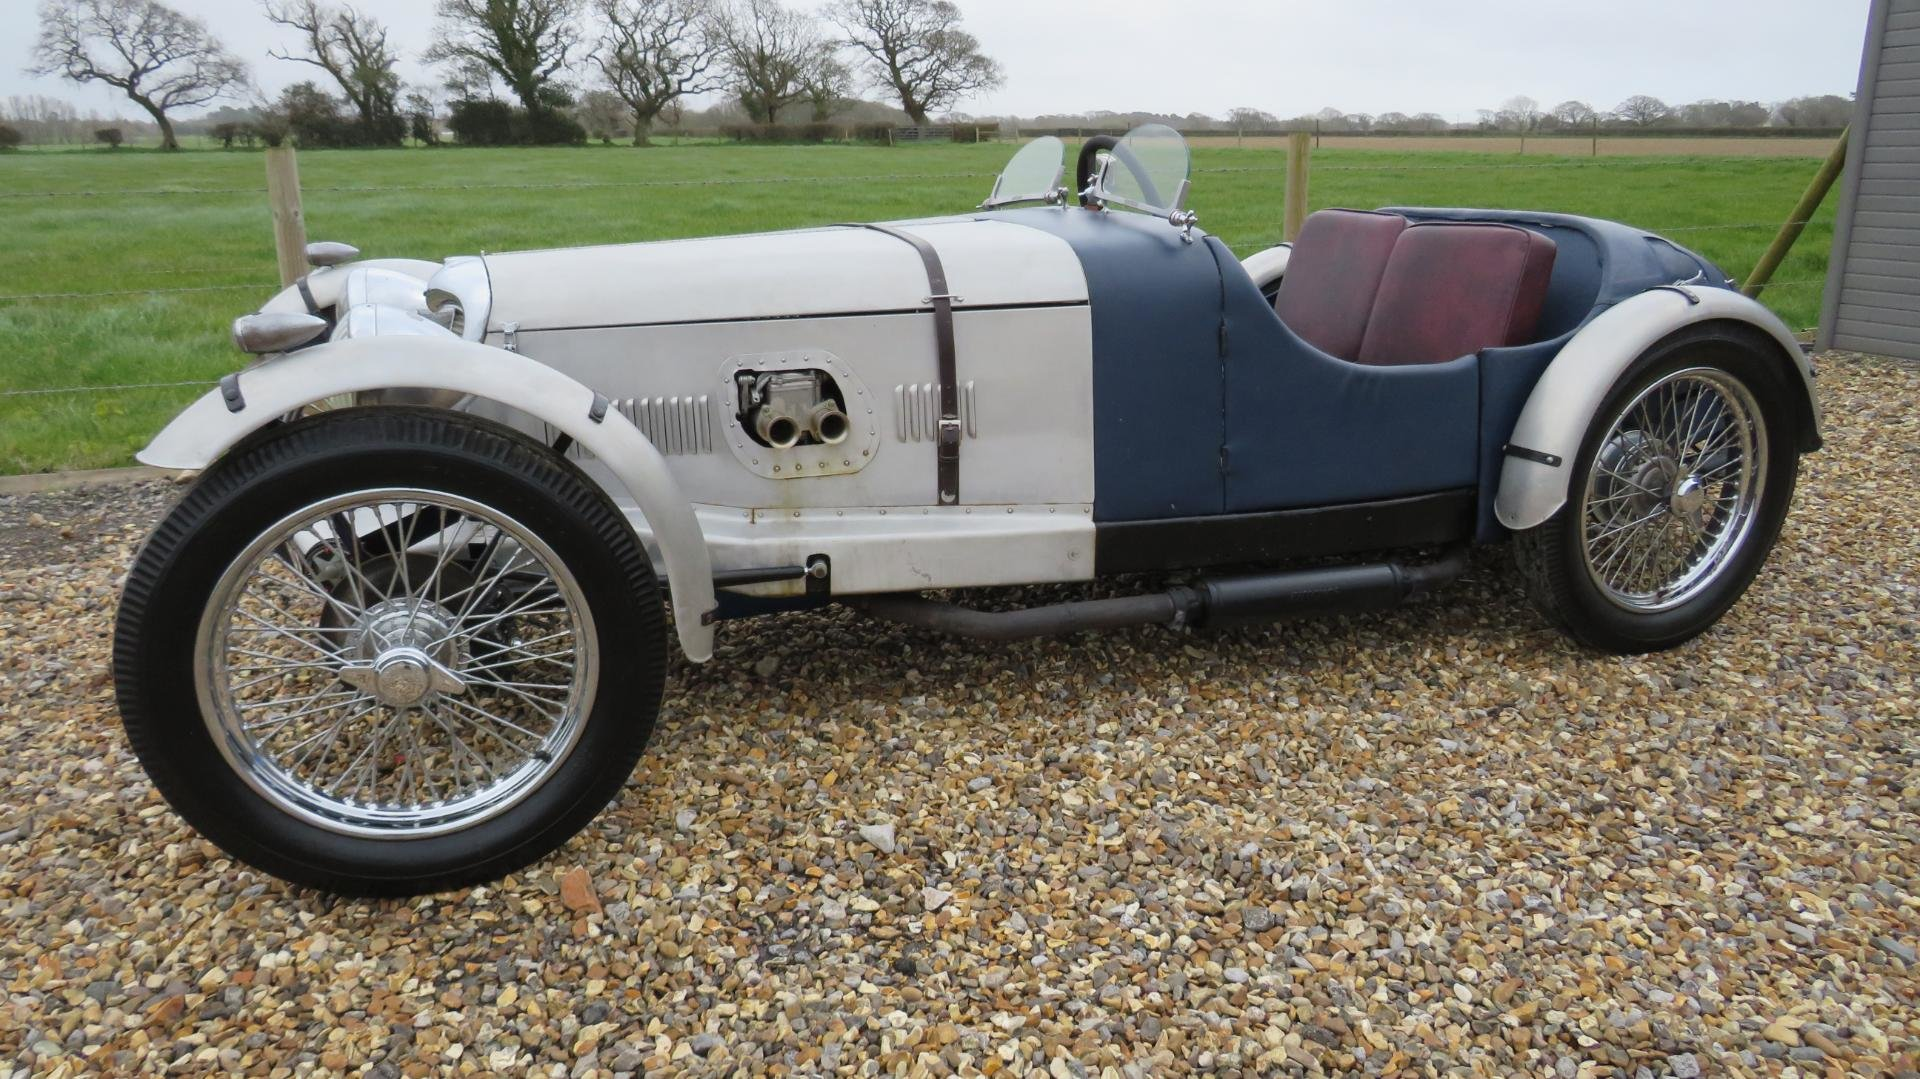 1938 Rover 10 special For Sale (picture 1 of 1)